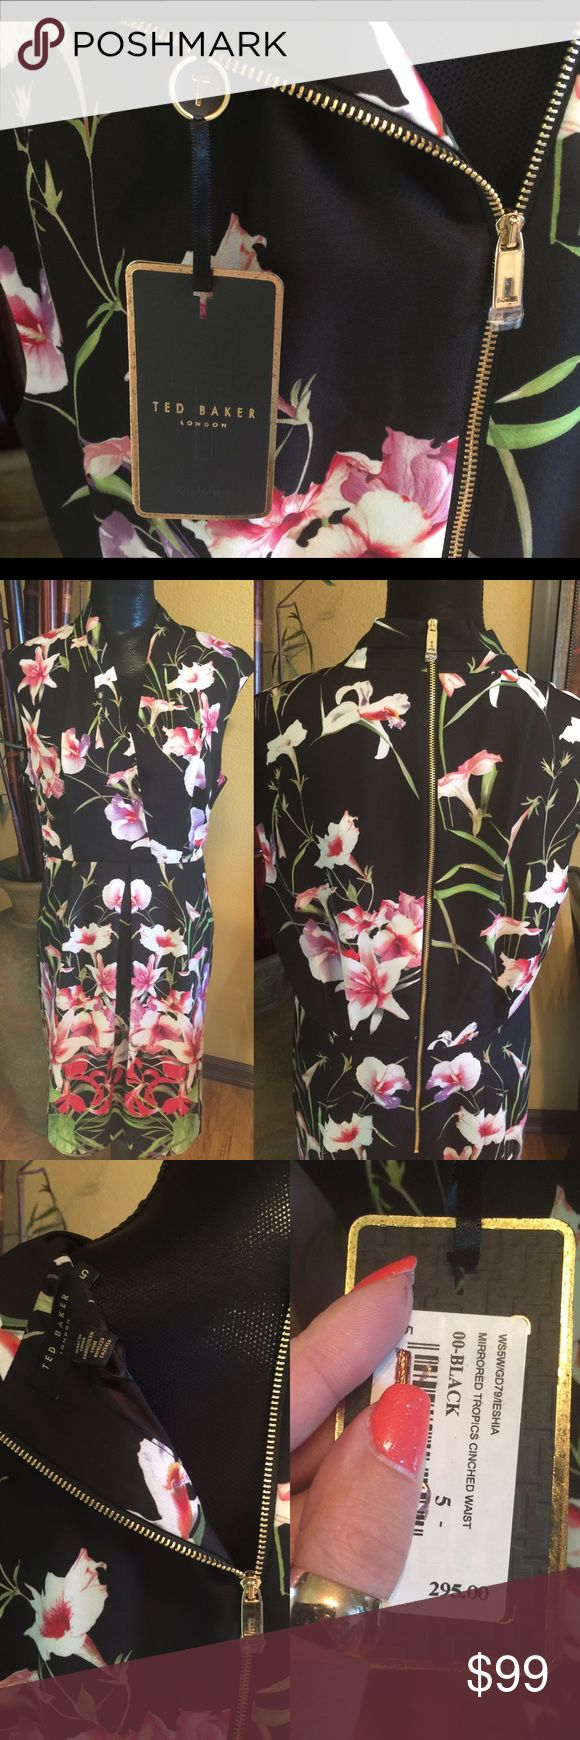 Ted Baker dress size 5 orig $295 NEW Black dress with tropical flowers by Ted Baker size 5 .New with tags Ted Baker Dresses Midi